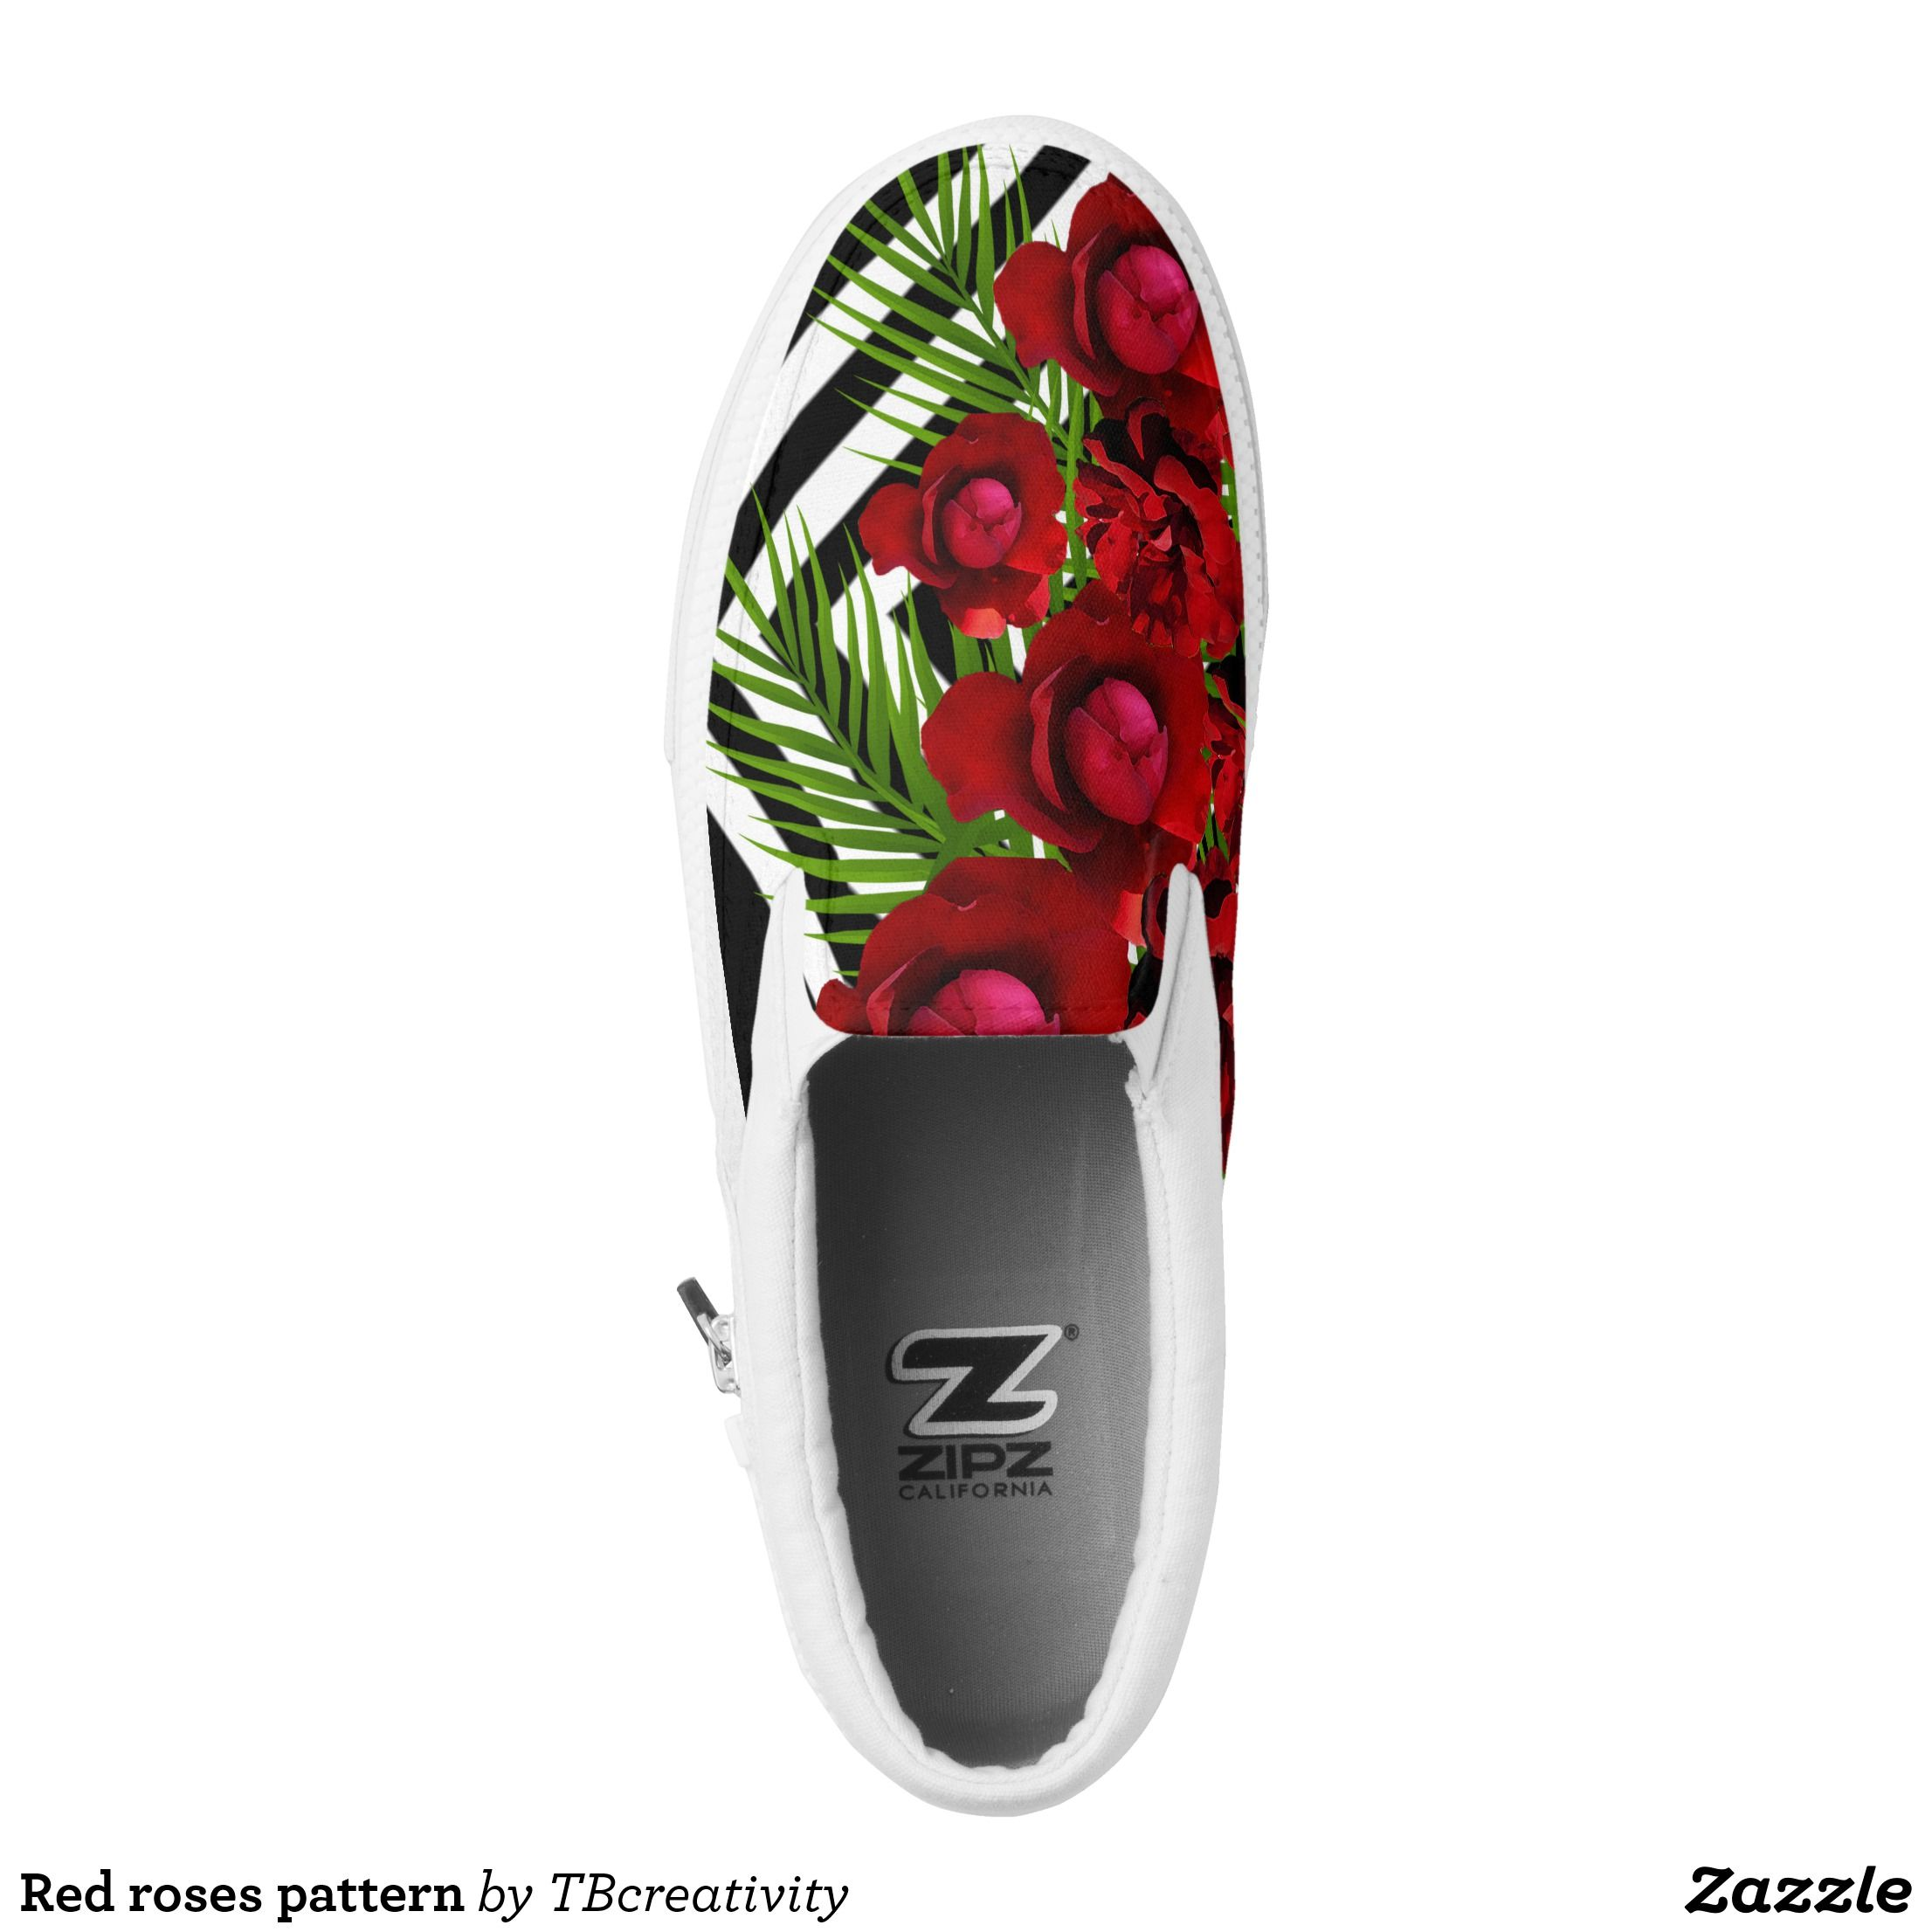 Red Roses Pattern Slip On Sneakers Zazzle Com Slip On Sneakers Painted Shoes Slip On